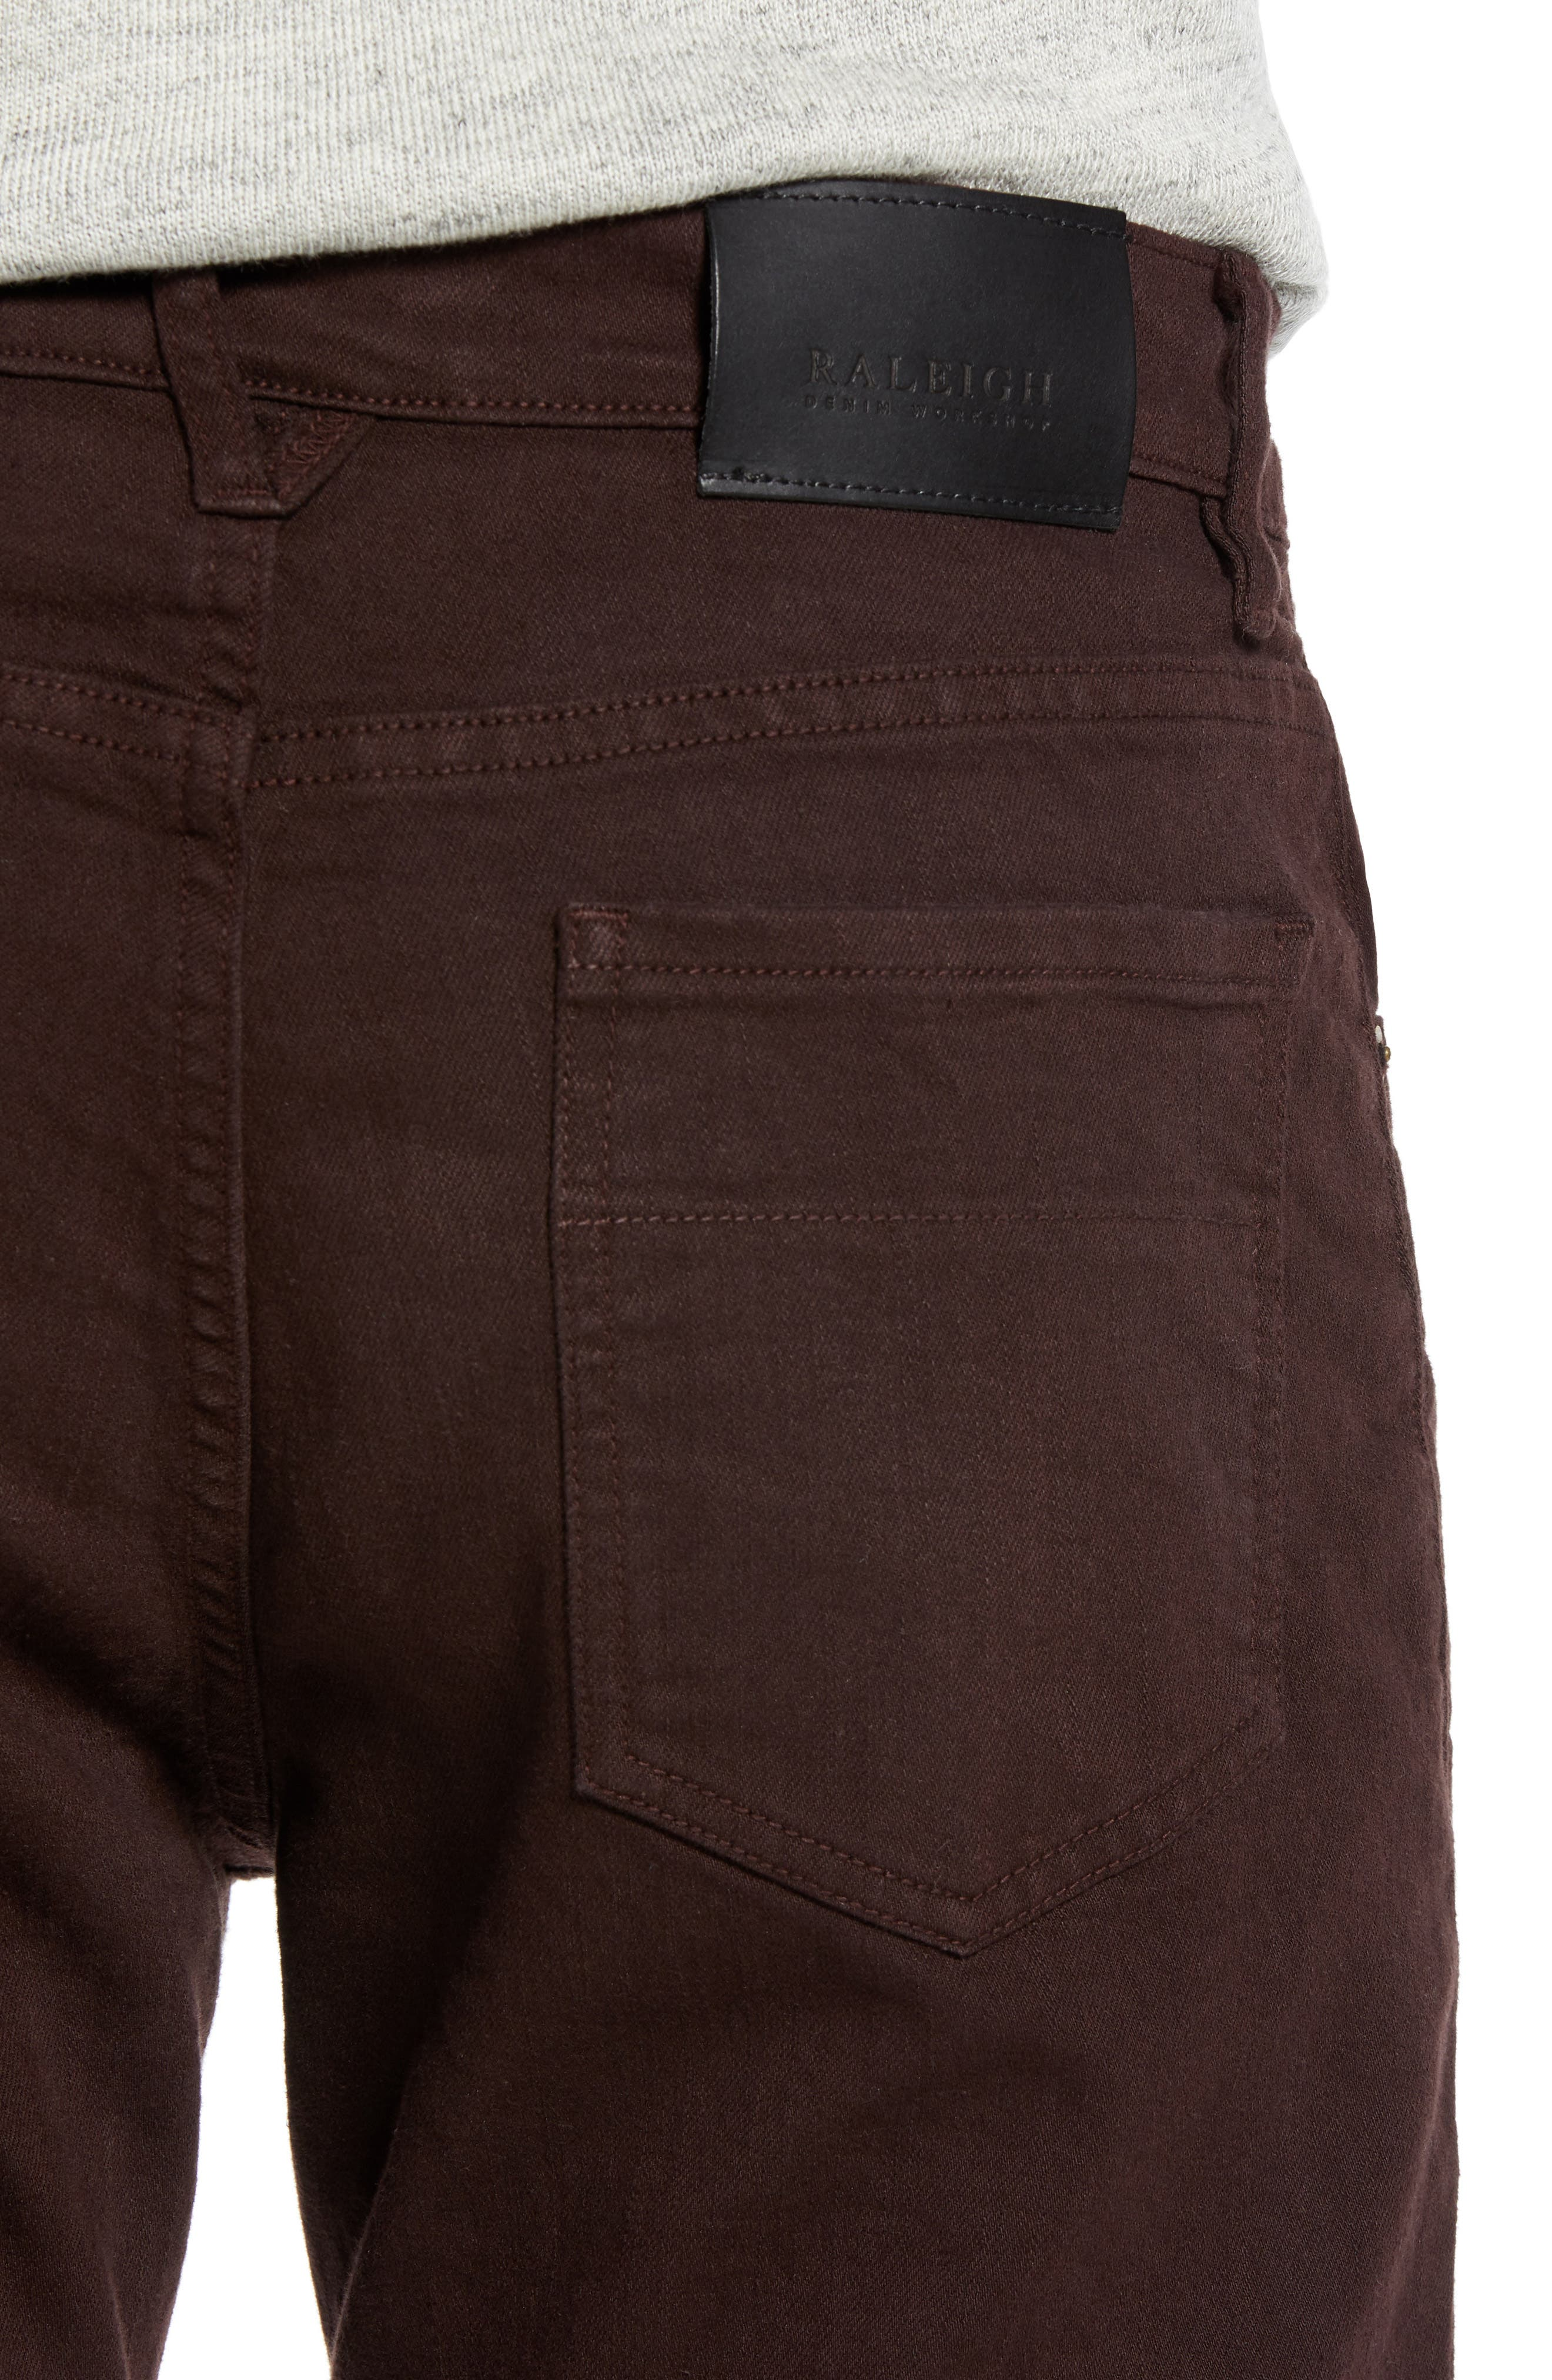 Raleight Denim Martin Skinny Fit Jeans,                             Alternate thumbnail 4, color,                             CURRANT